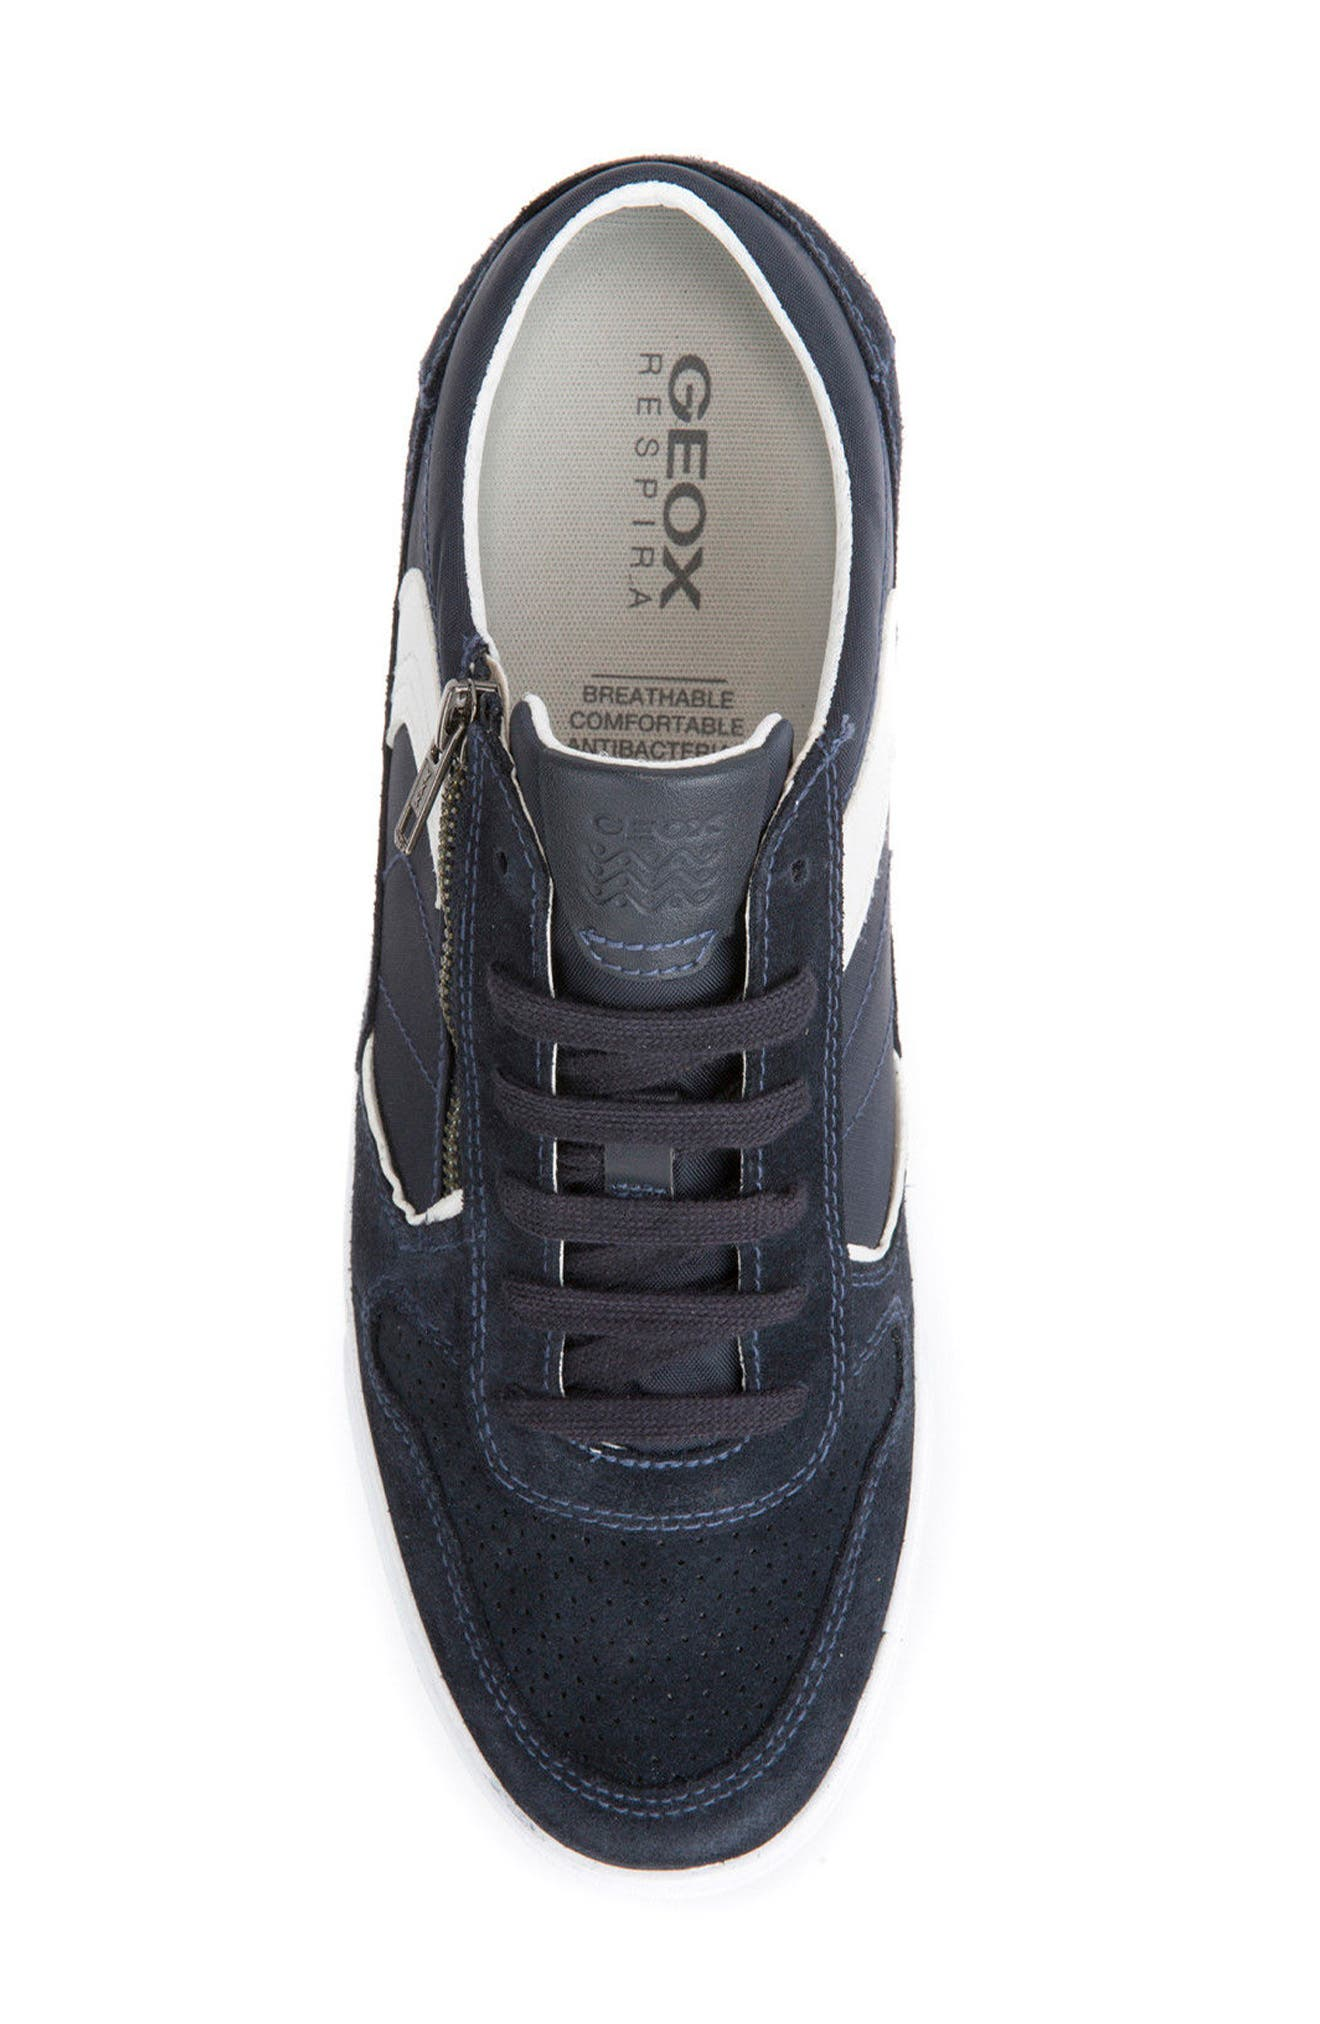 Box 33 Low Top Zip Sneaker,                             Alternate thumbnail 5, color,                             Navy